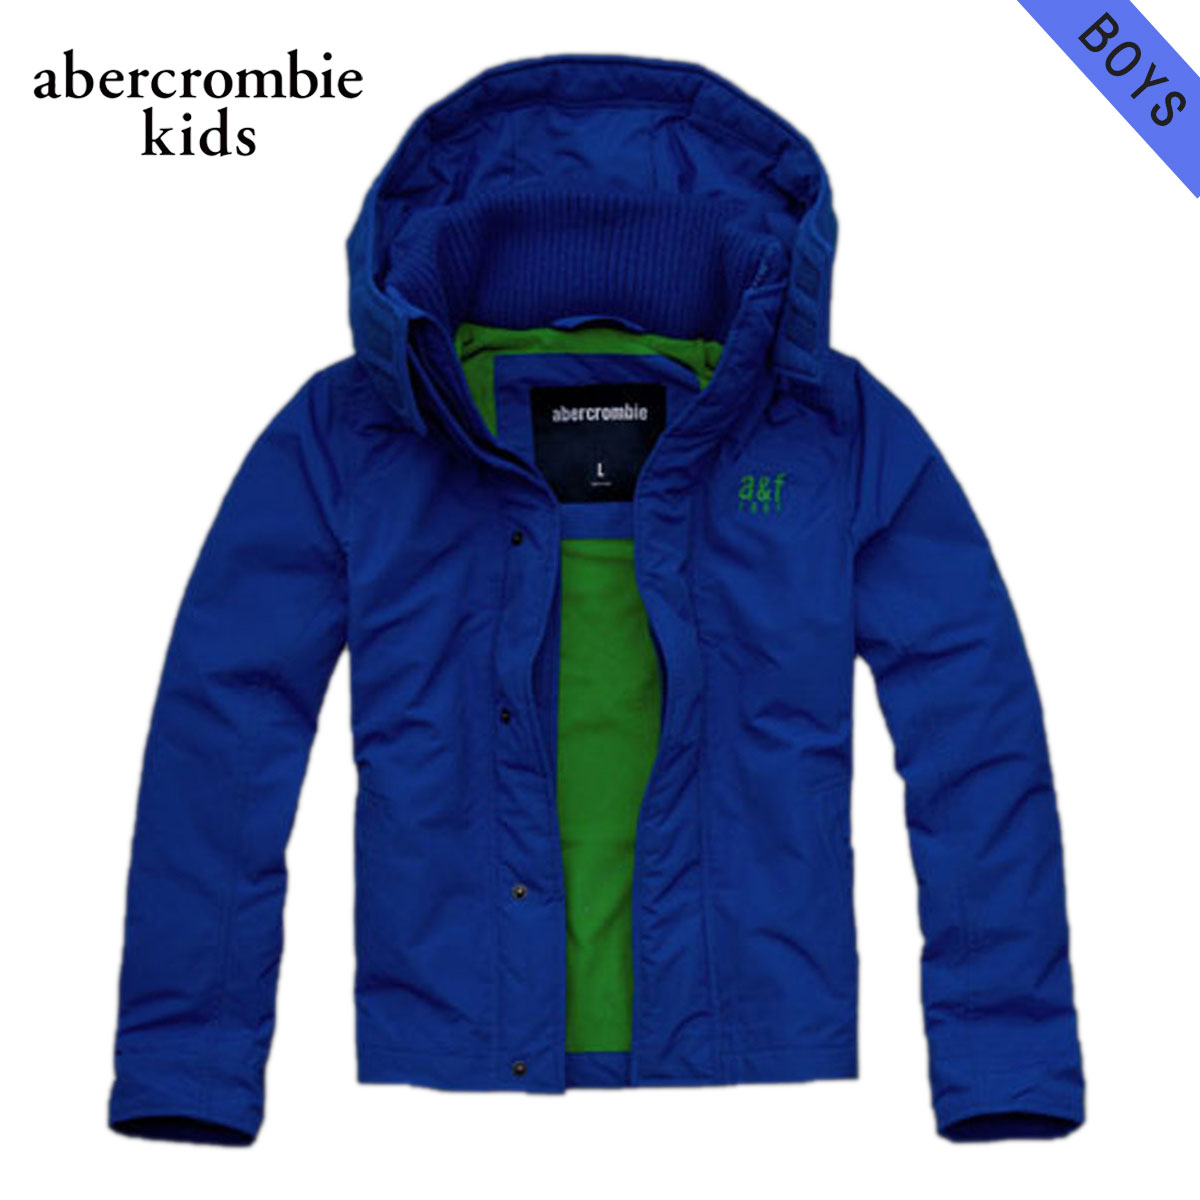 35%OFFセール 【販売期間 12/4 20:00~12/11 1:59】 アバクロキッズ AbercrombieKids 正規品 子供服 ボーイズ ジャケット a&f all-season weather warrior BLUE D30S40